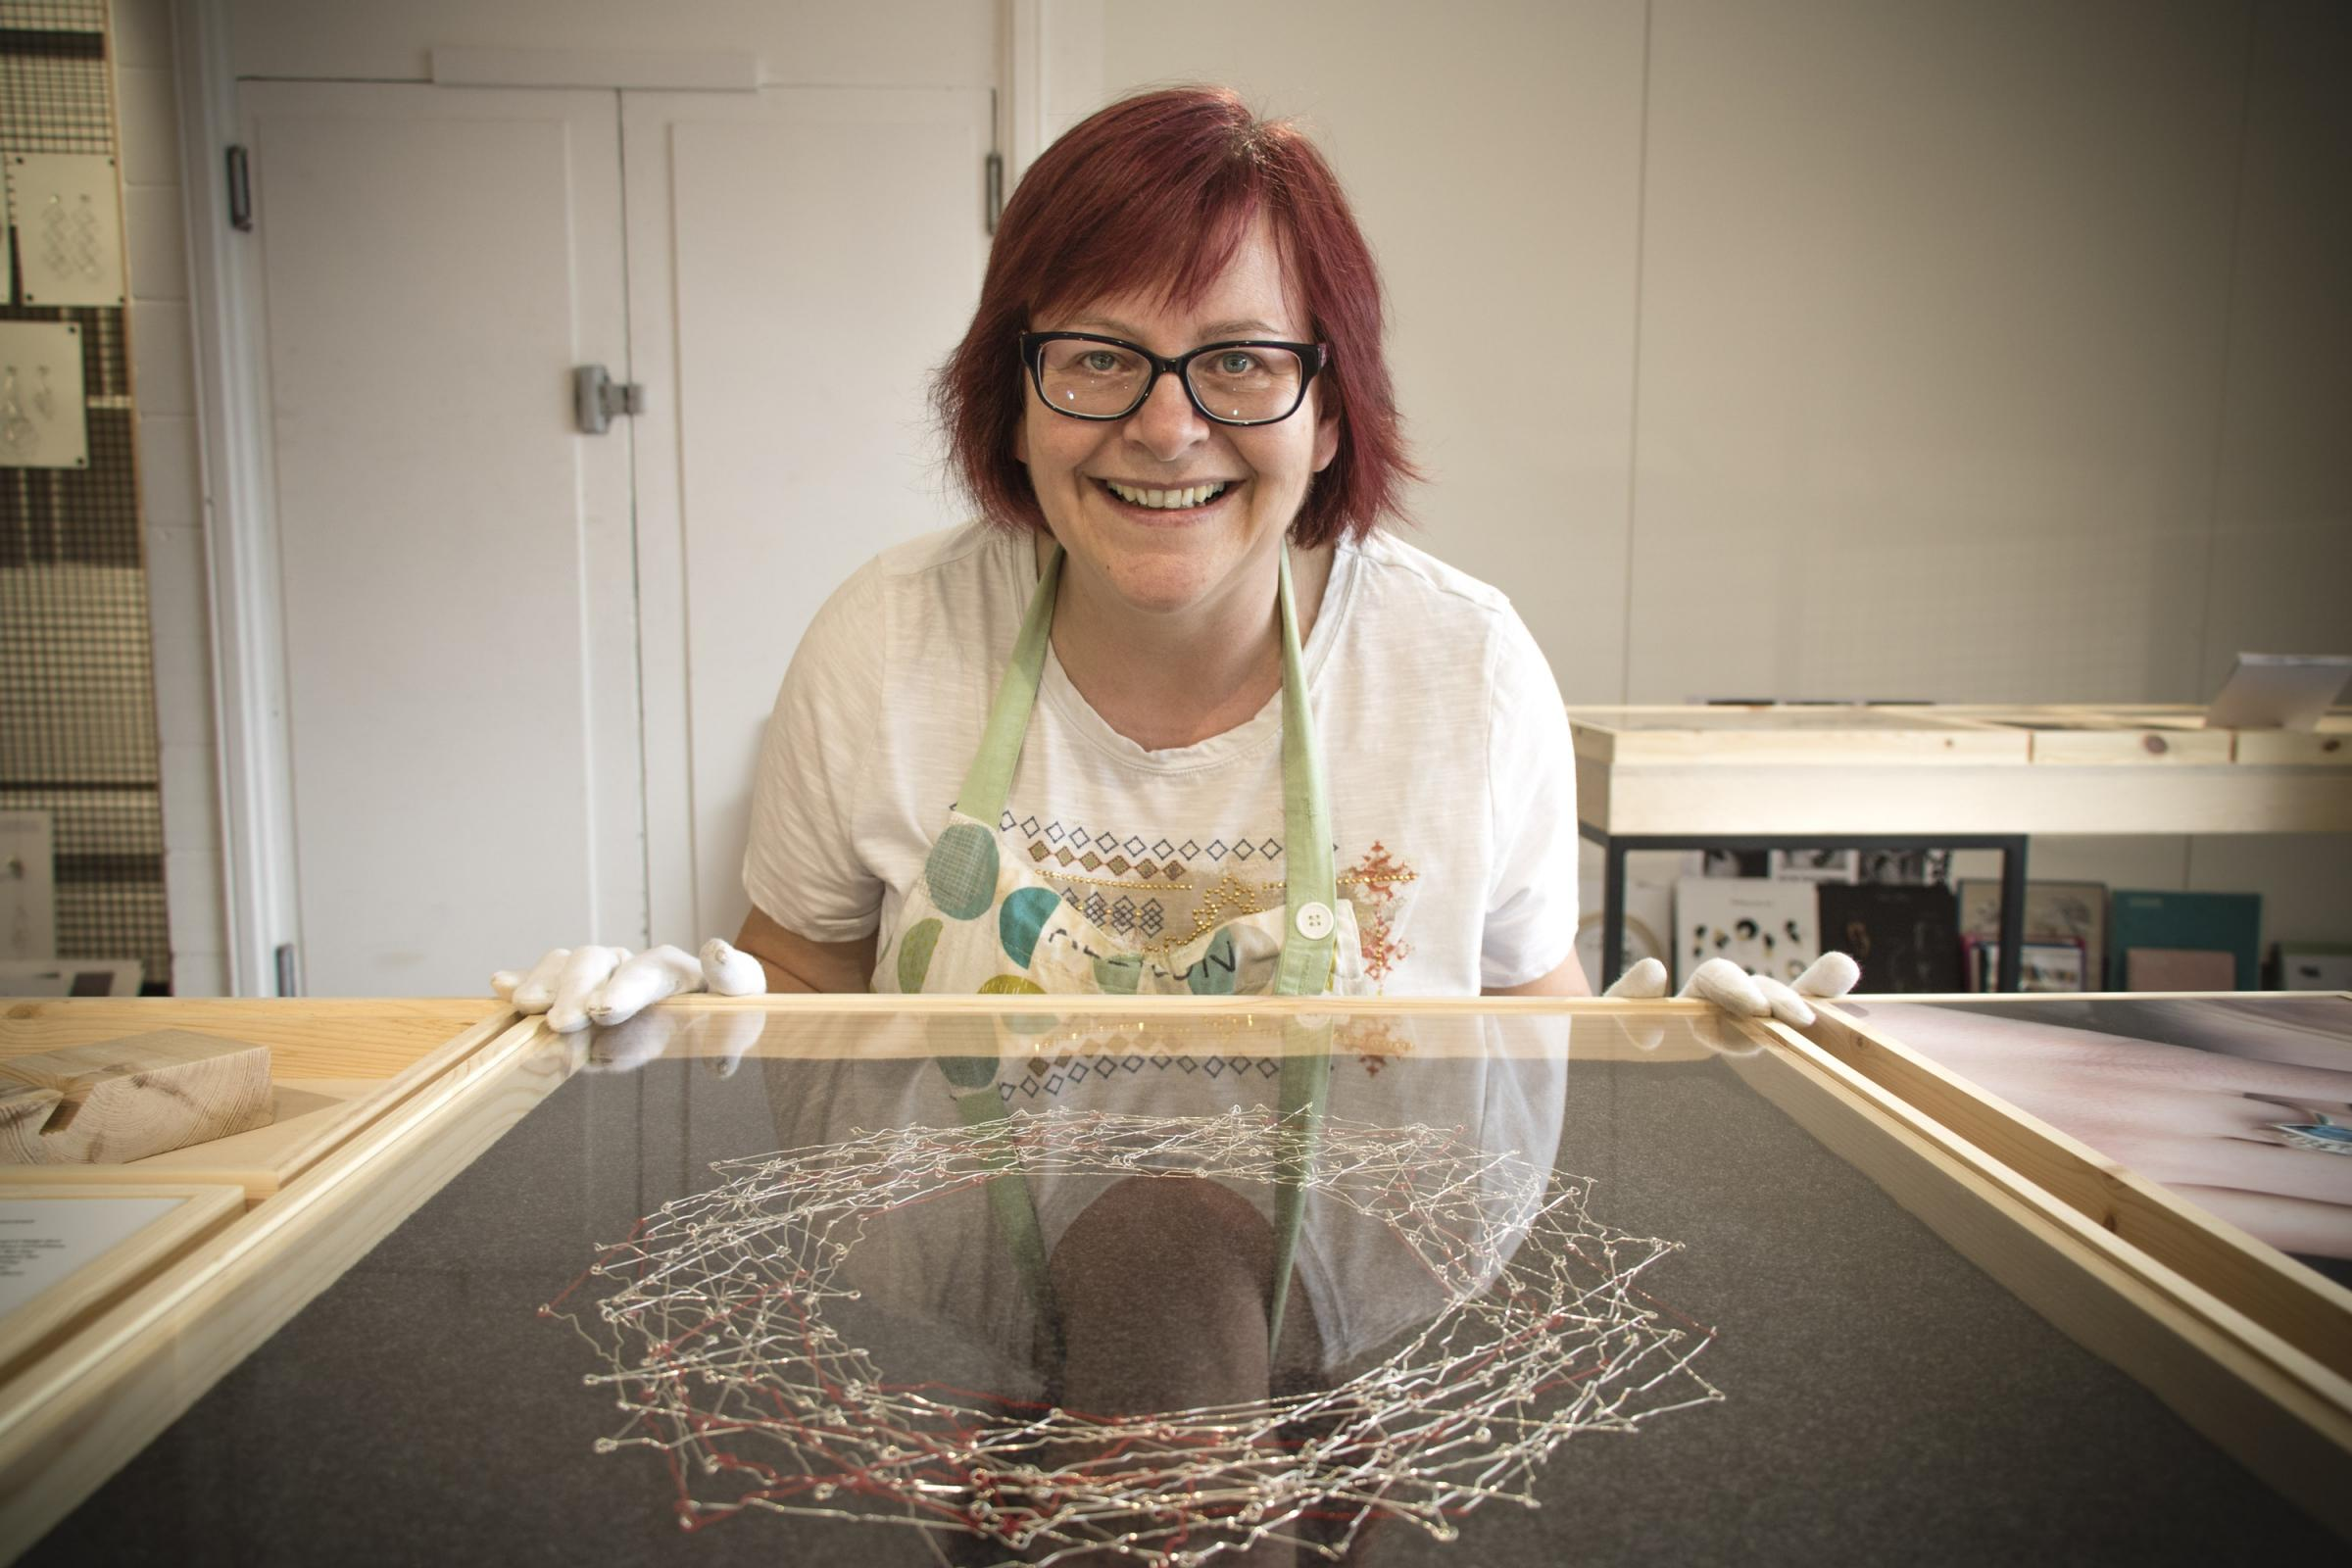 Jewellery inspired by DNA at new show in Dundee